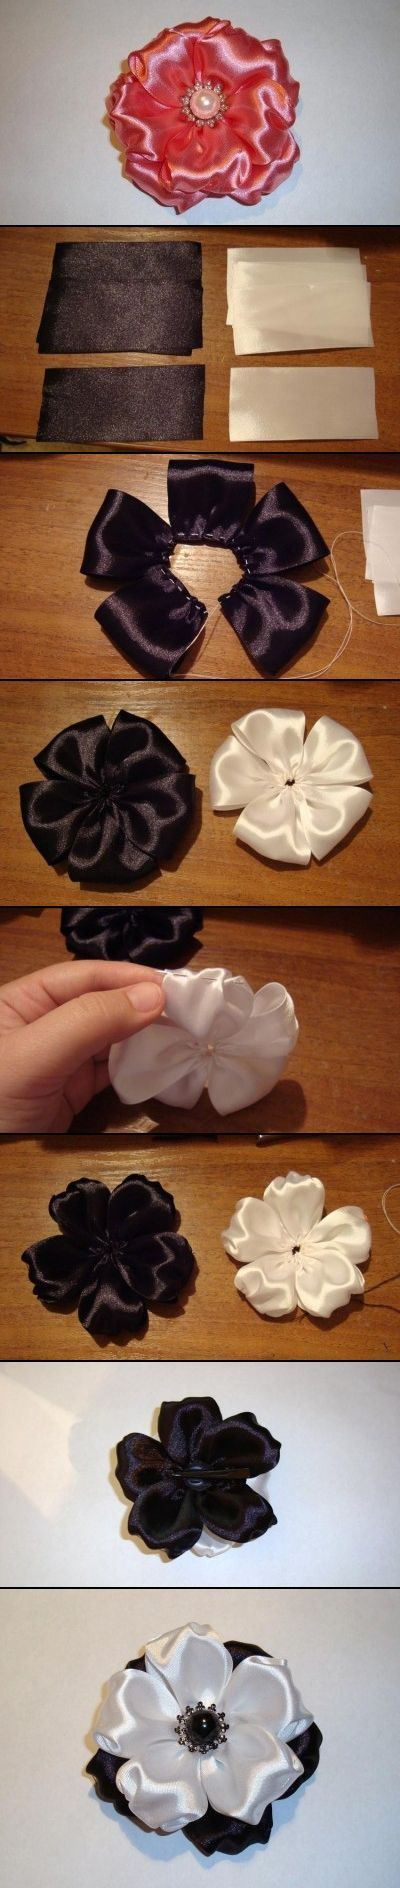 ...what a simple technique resulting in such a lovely flower!.... Tutorial not in link: